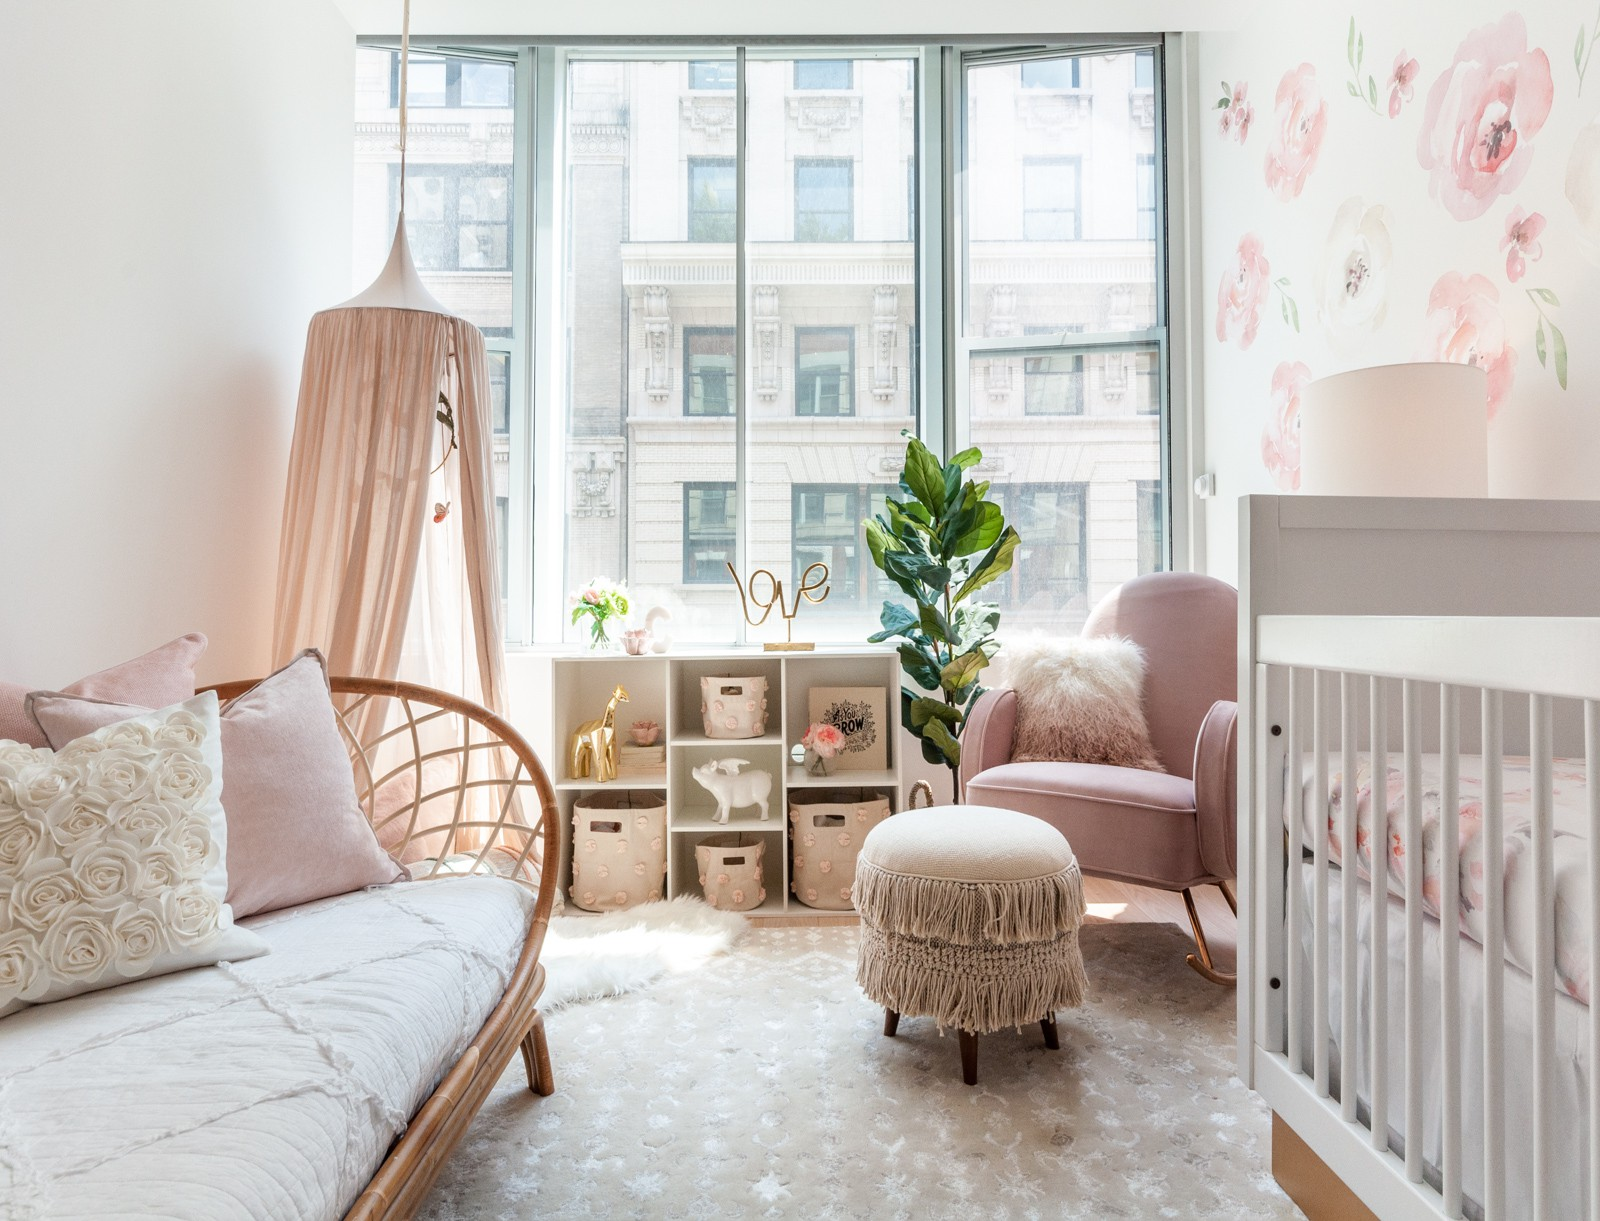 Fabulous-shabby-chic-nursery-with-pastel-pink-touches-and-lovely-natural-lighting-64290